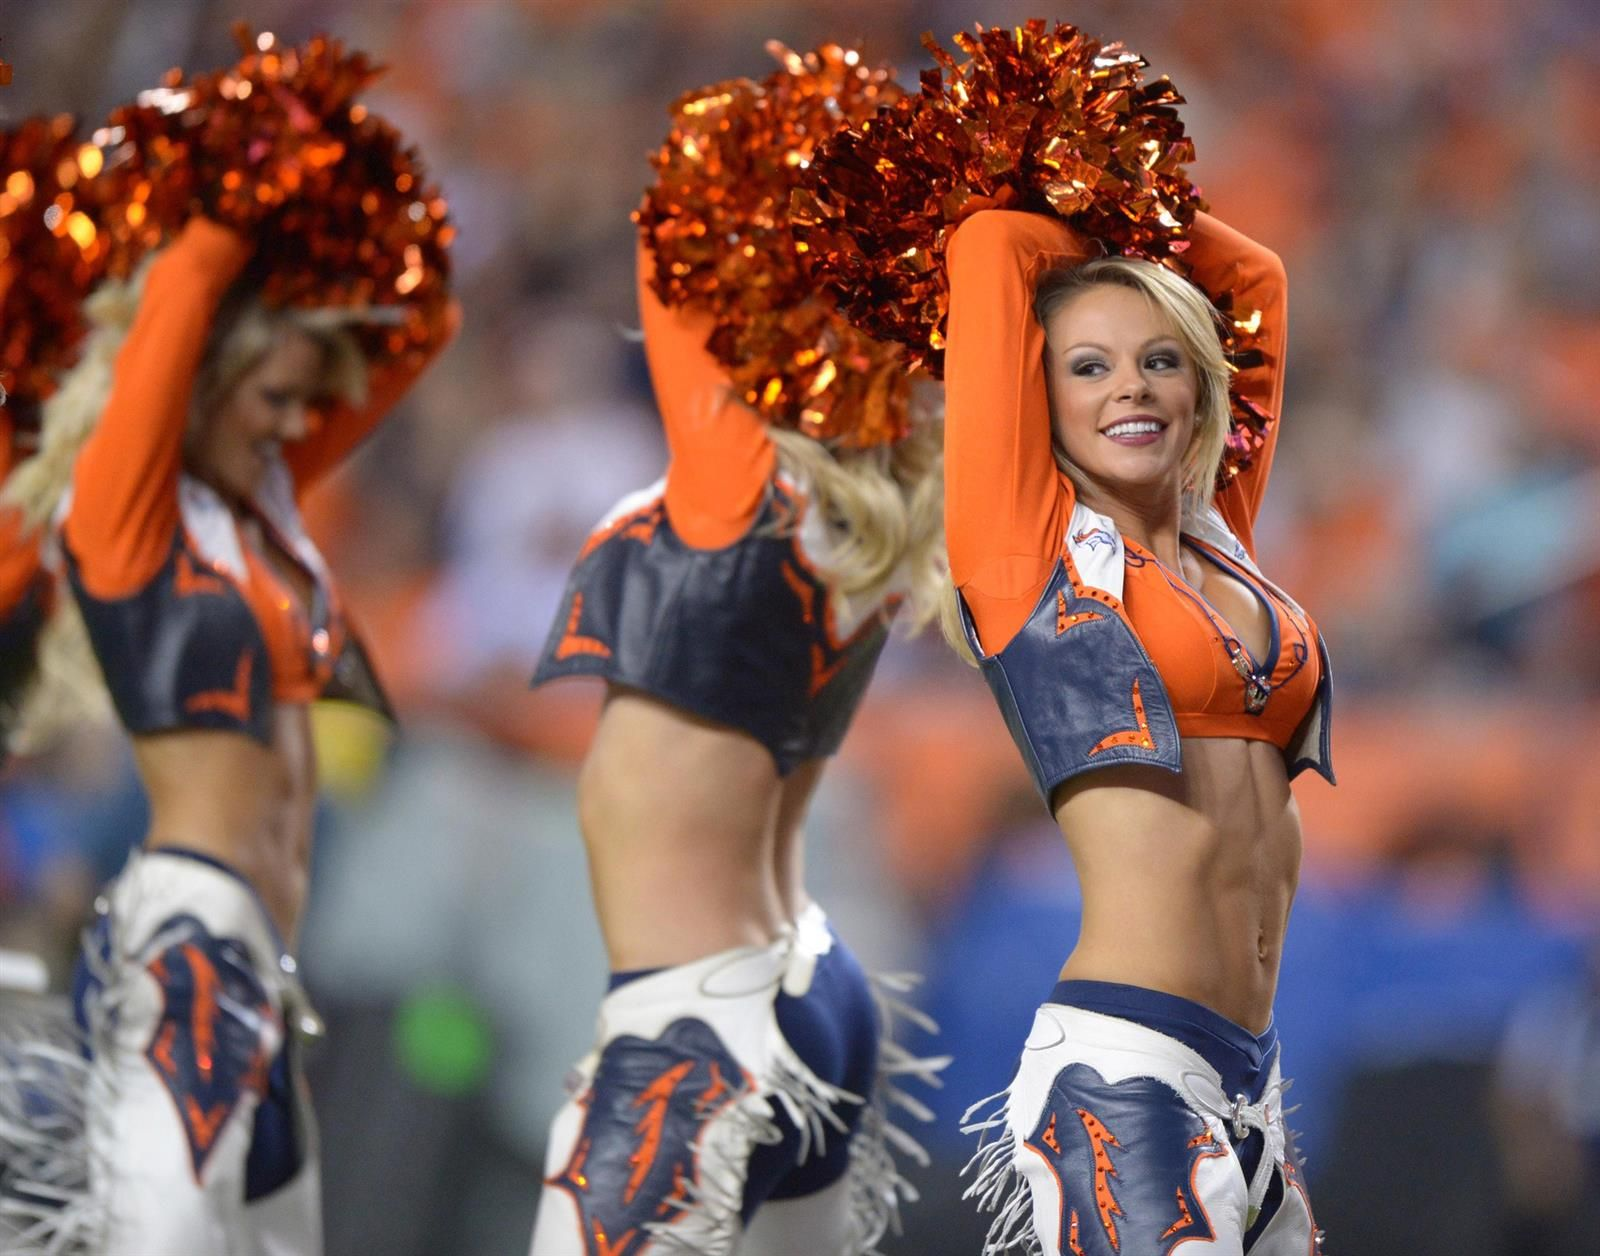 With Sexy bronco cheerleaders nude Such casual